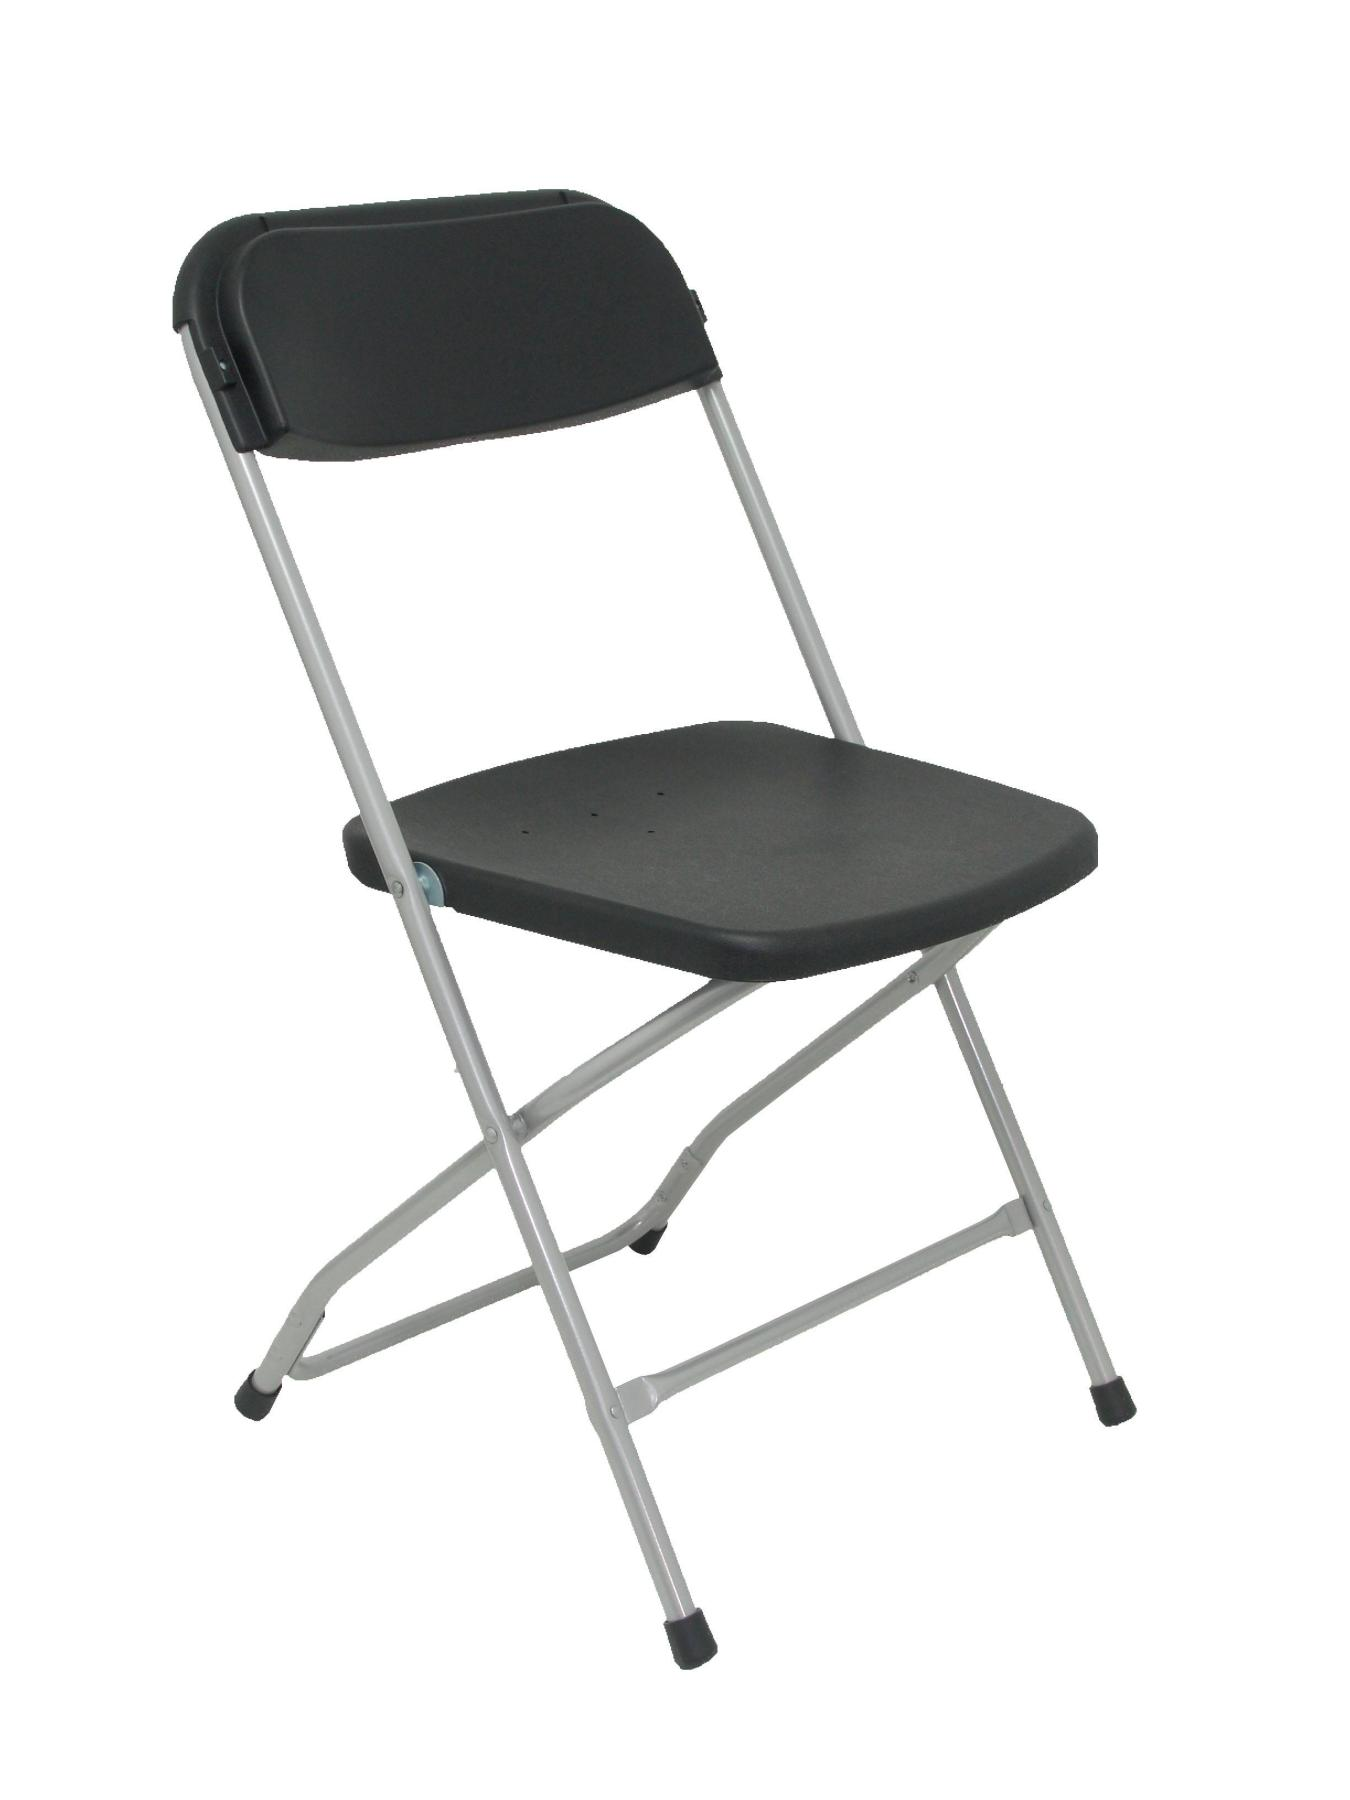 Pack 5 Folding Chairs Conference Up Seat And Backstop Polypropylene Capacitor's Color Black TAPHOLE AND CURLED Model Nurseries